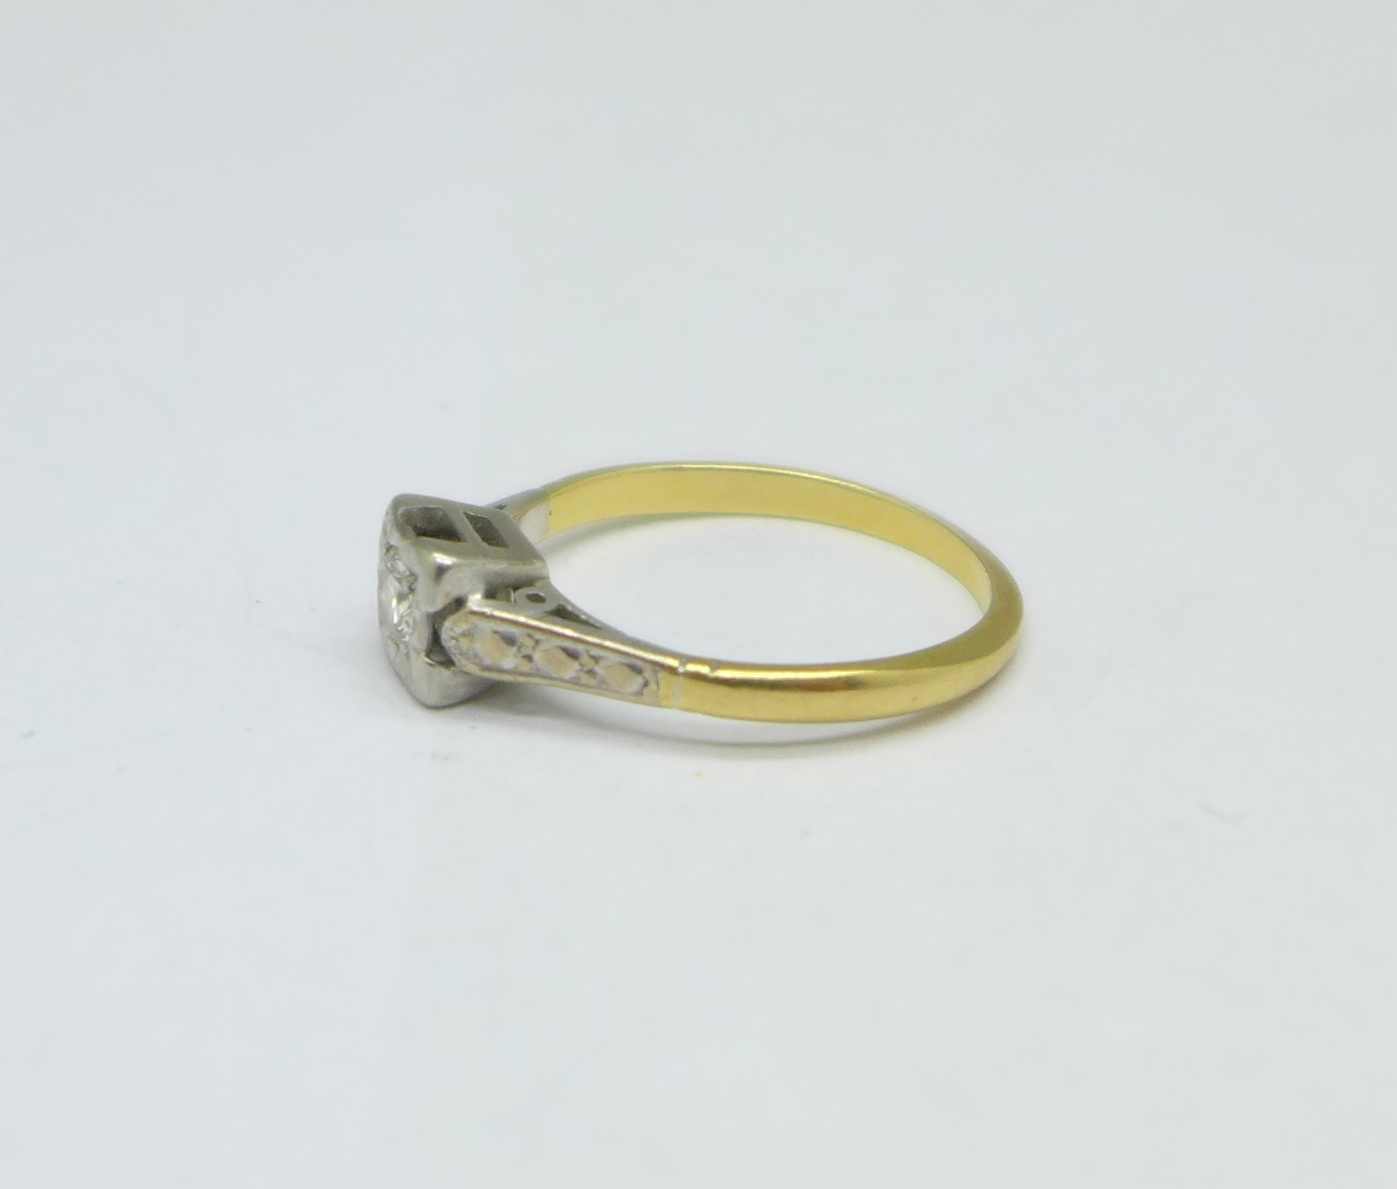 An 18ct gold and platinum set diamond ring, 2.3g, L - Image 2 of 3